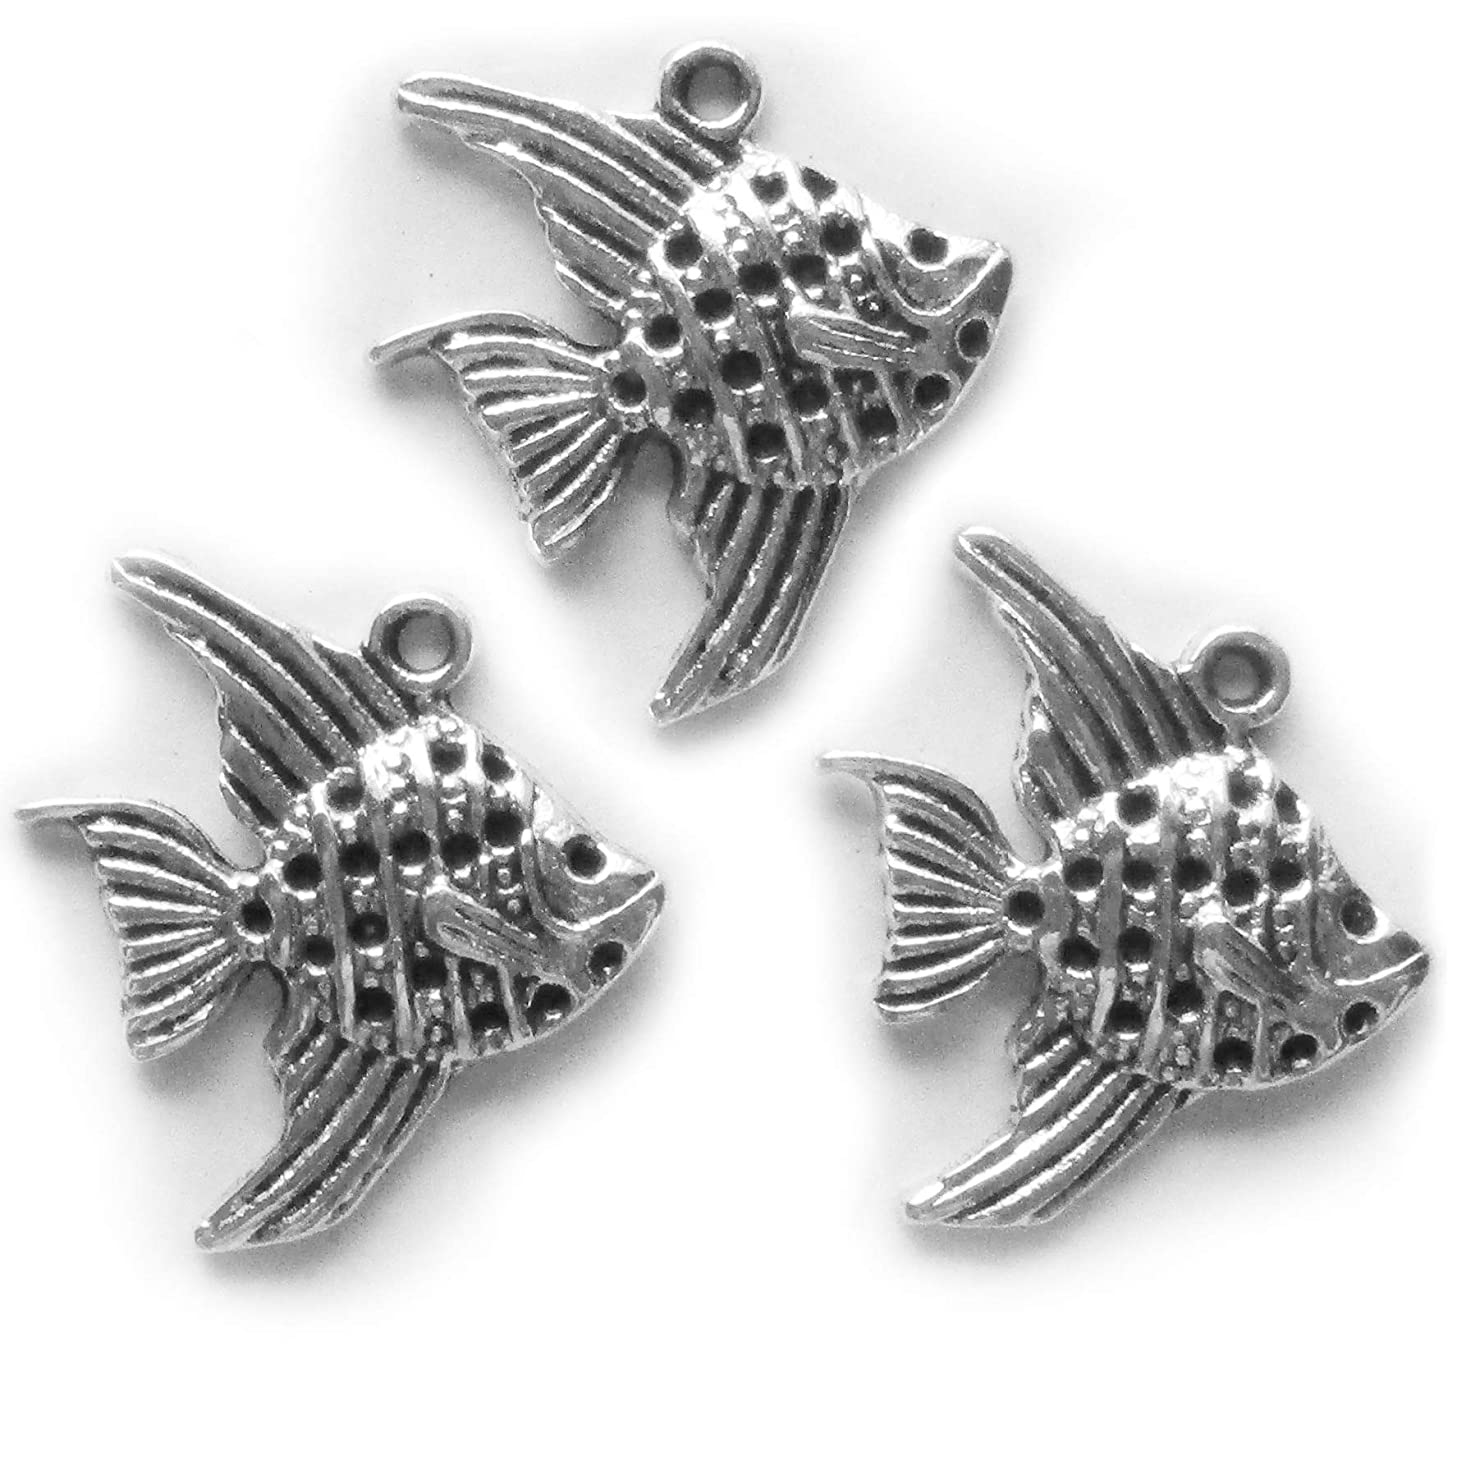 50 Pieces Goldfish Antique Silver Pendants for Jewelry Making Supplies Bracelet Necklace Jewelry Accessories Beading?